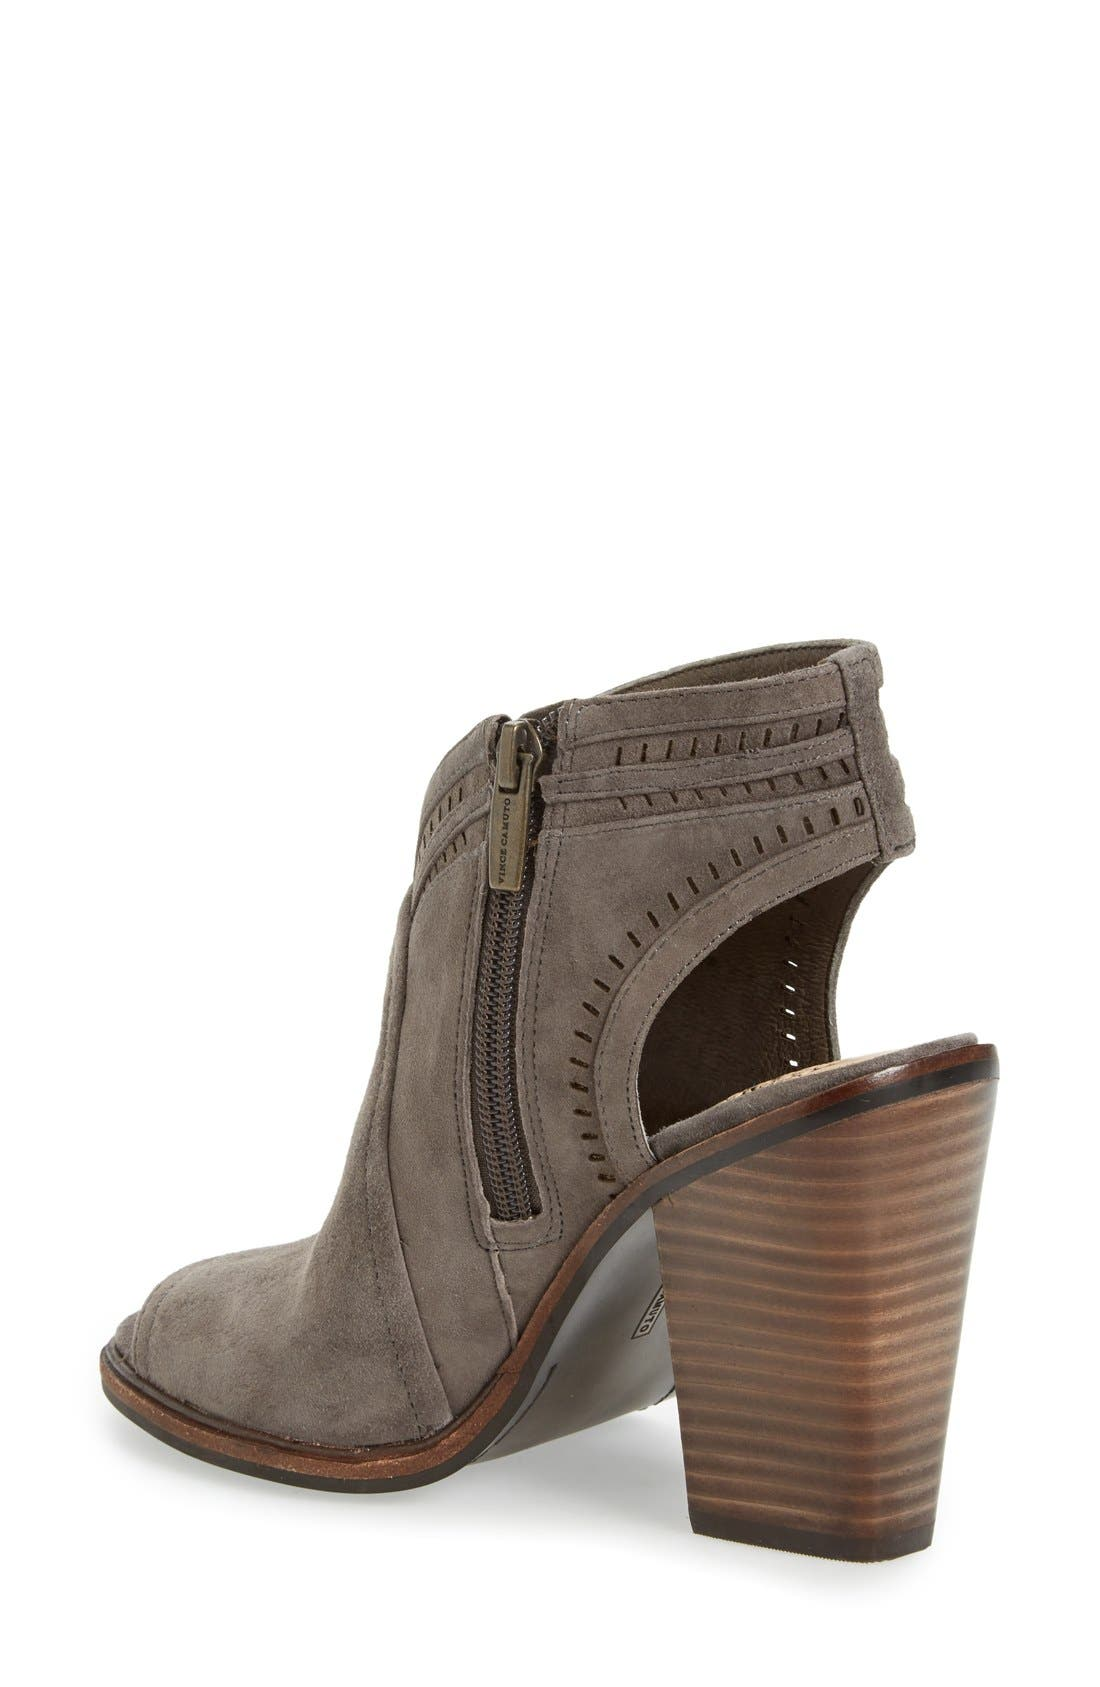 Alternate Image 2  - Vince Camuto 'Koral' Perforated Open Toe Bootie (Women) (Nordstrom Exclusive)